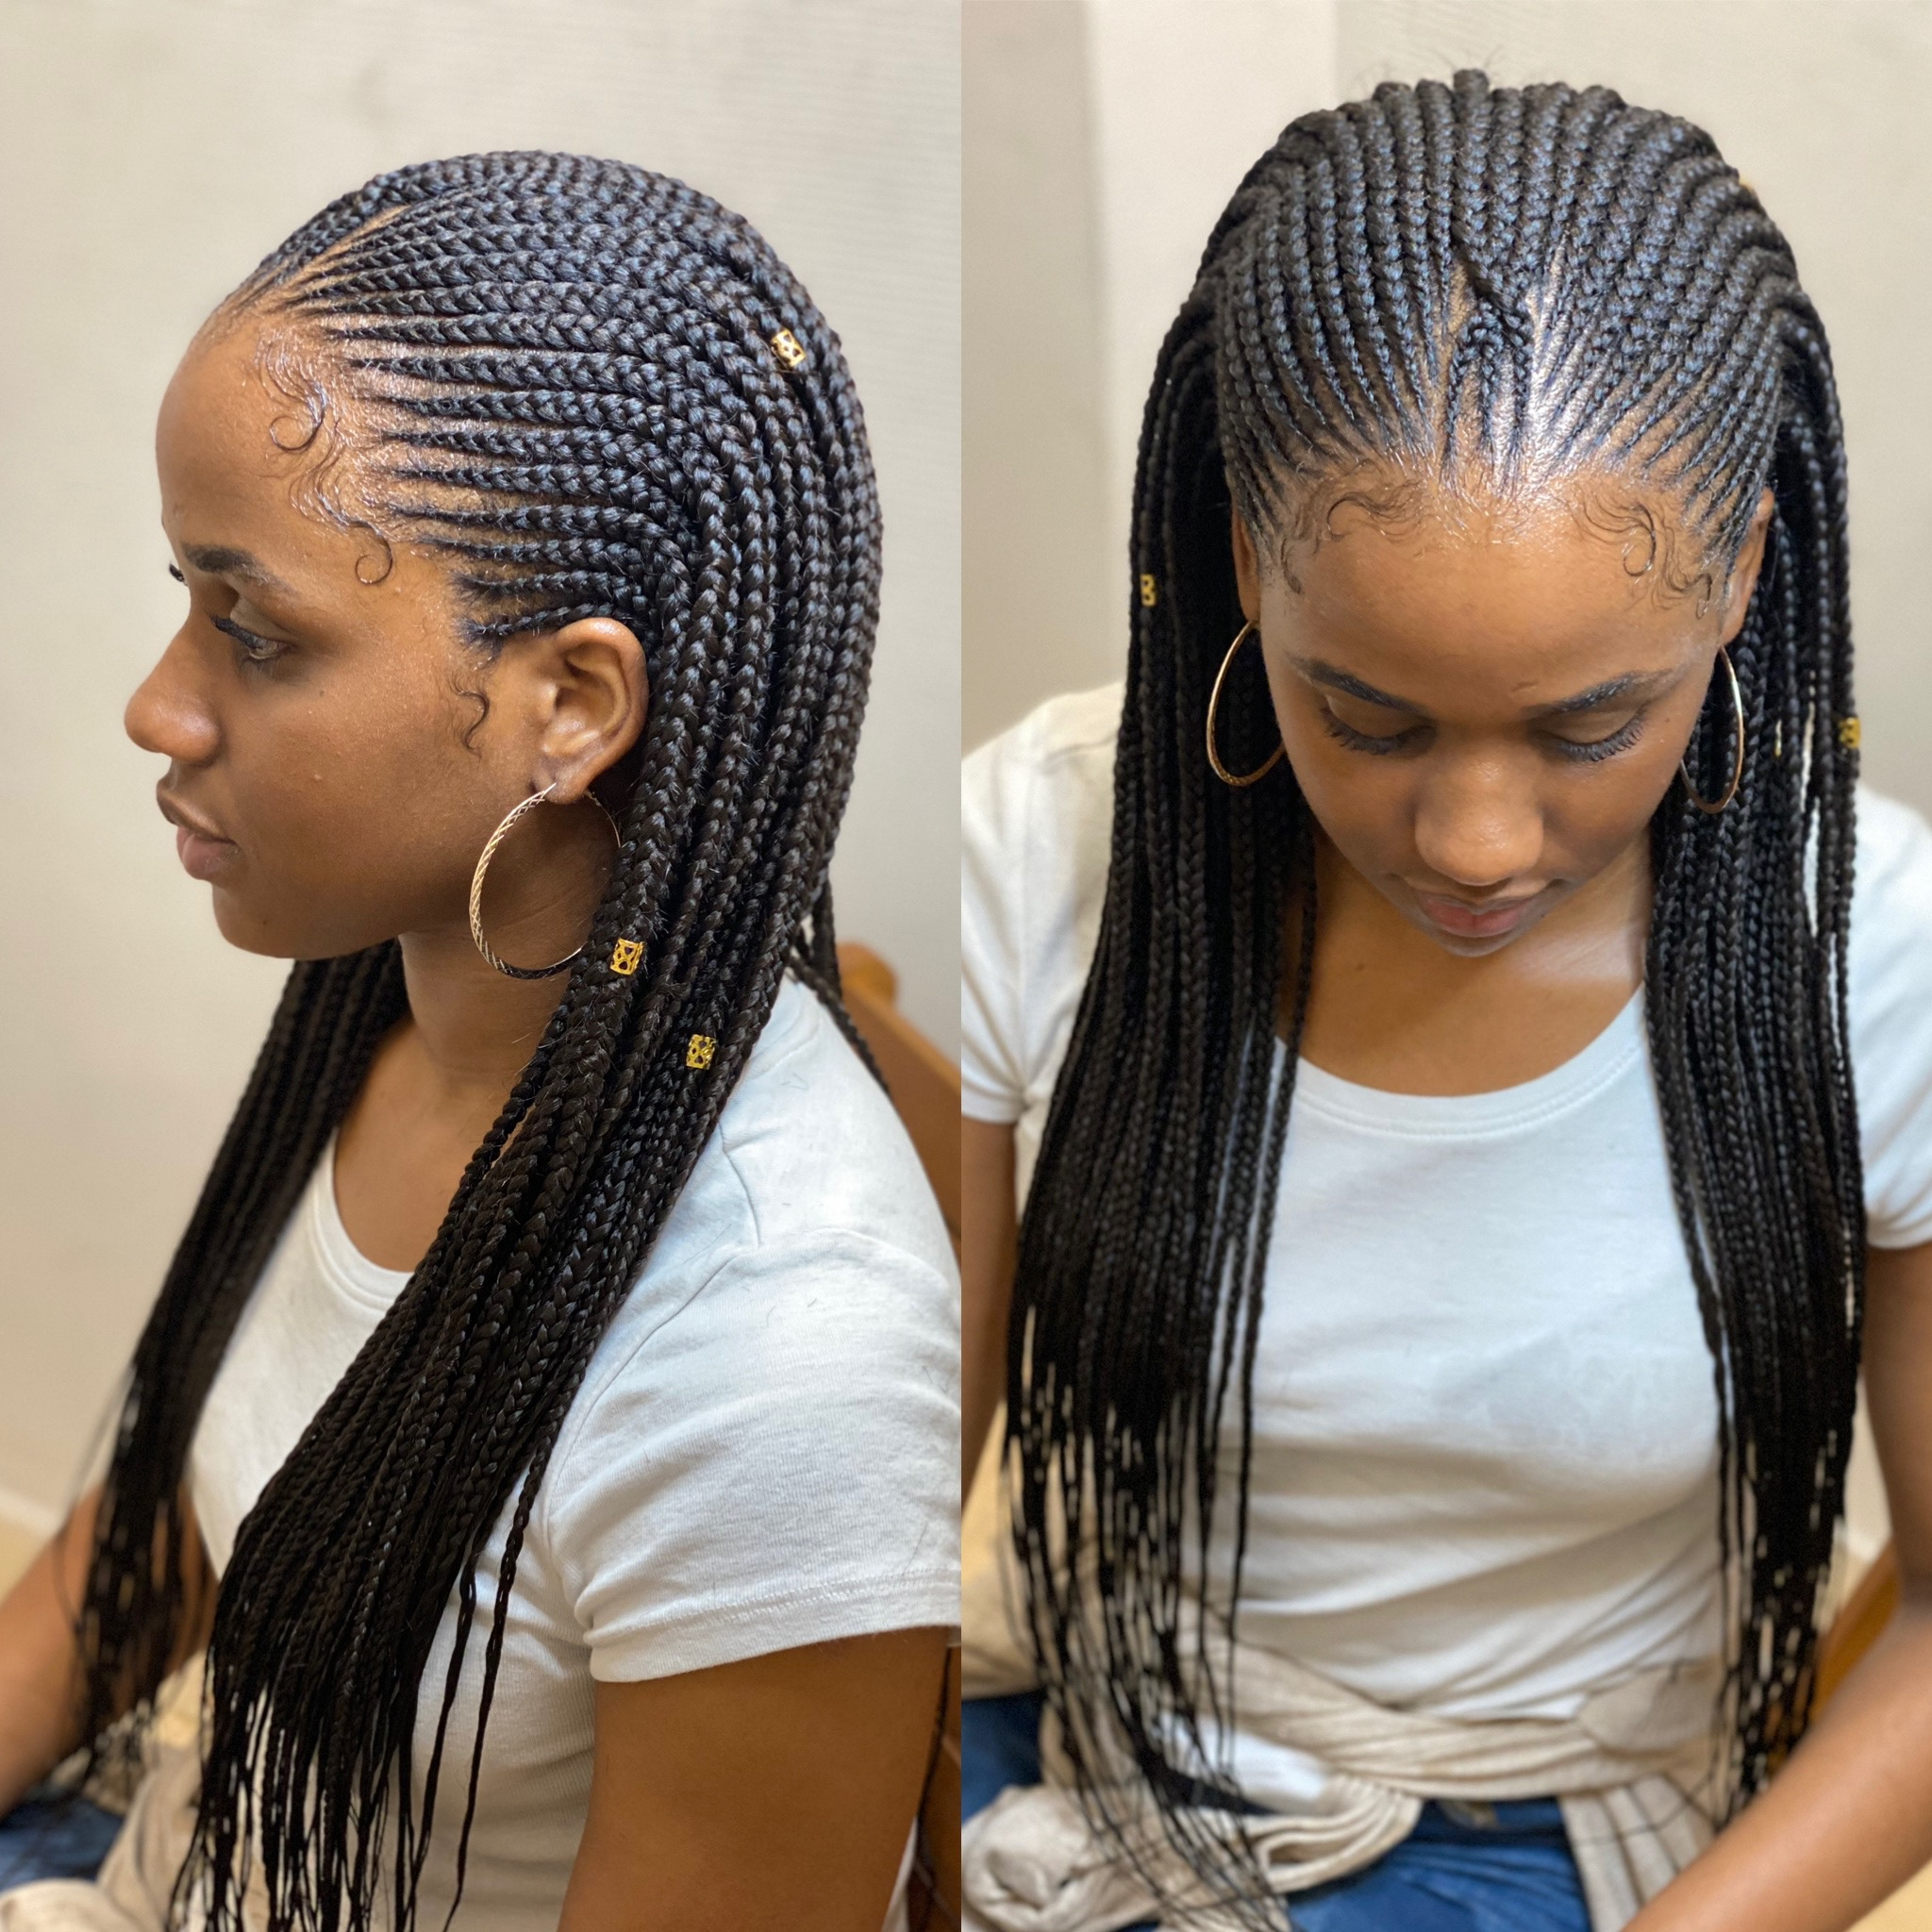 salon de coiffure afro tresse tresses box braids crochet braids vanilles tissages paris 75 77 78 91 92 93 94 95 CJWTDGDQ